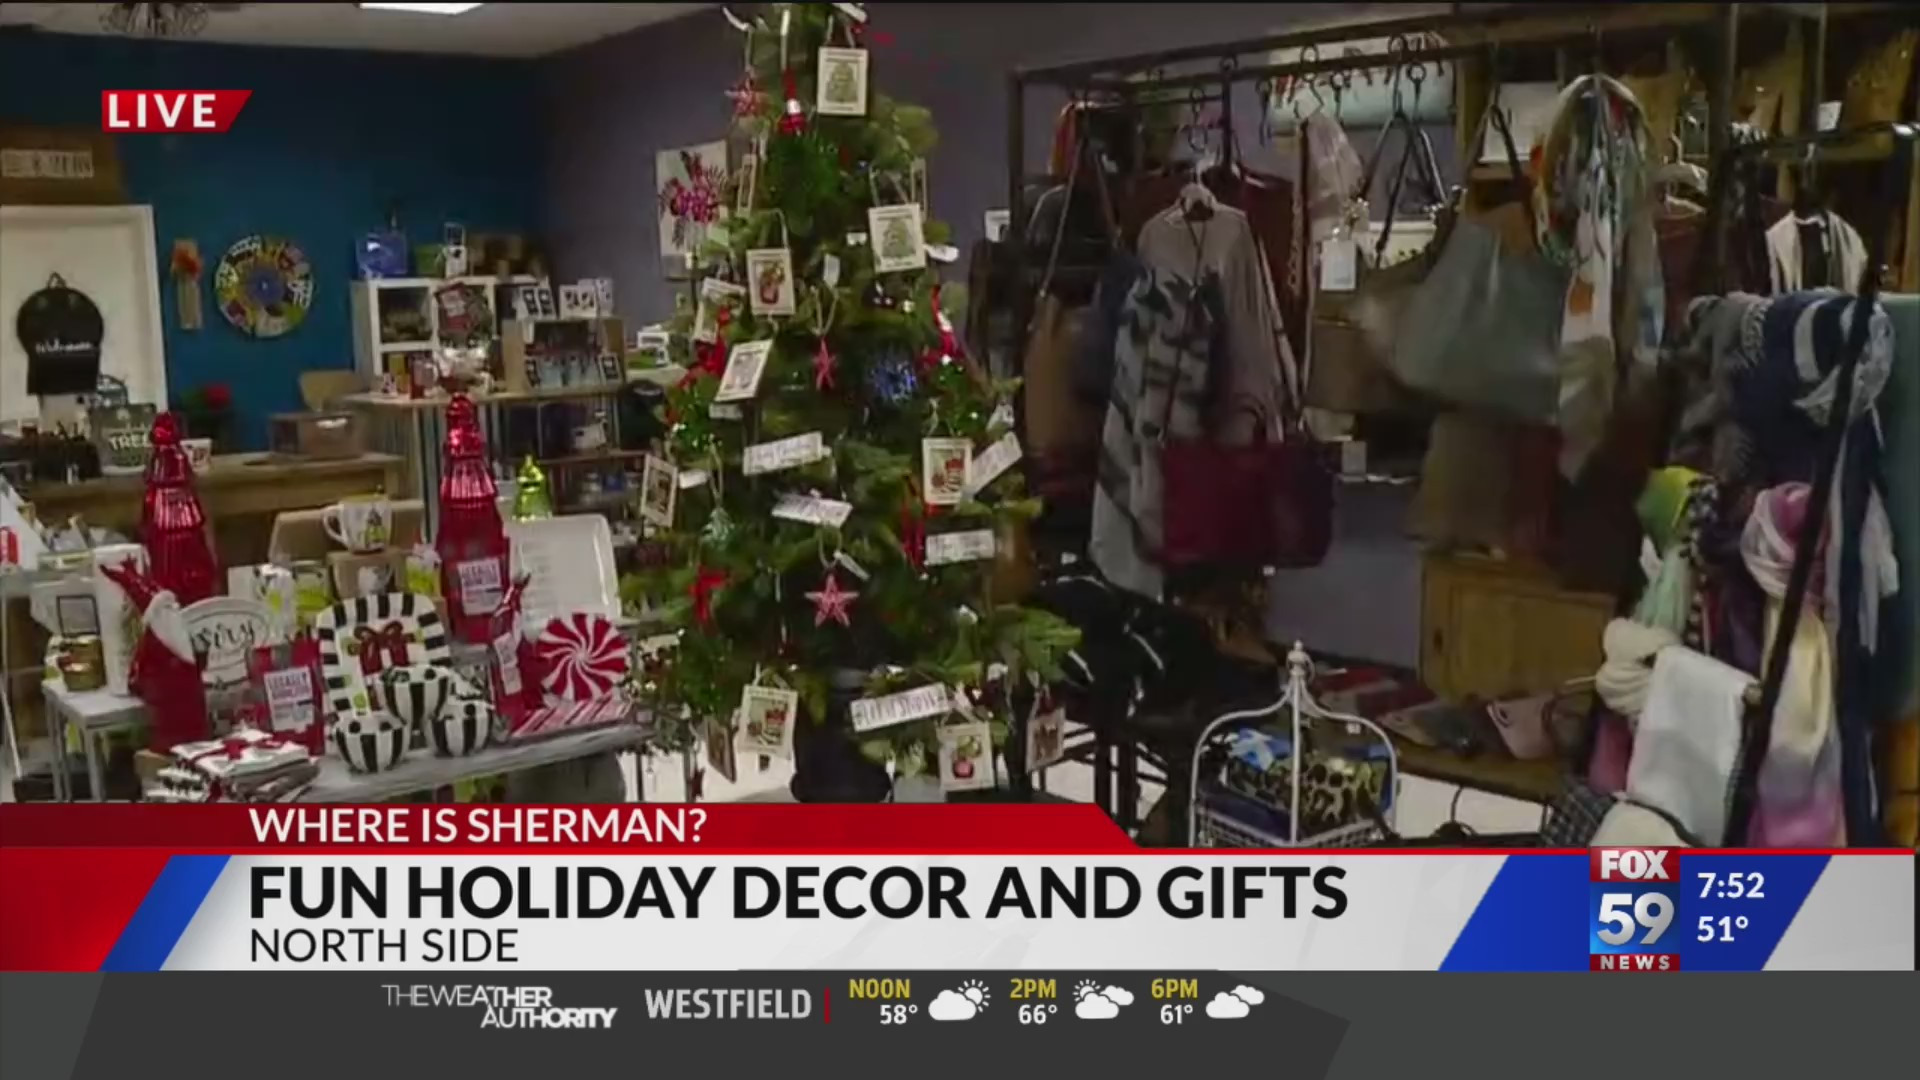 Shop for fun holiday decorations and gifts at North Side shop | Fox 59